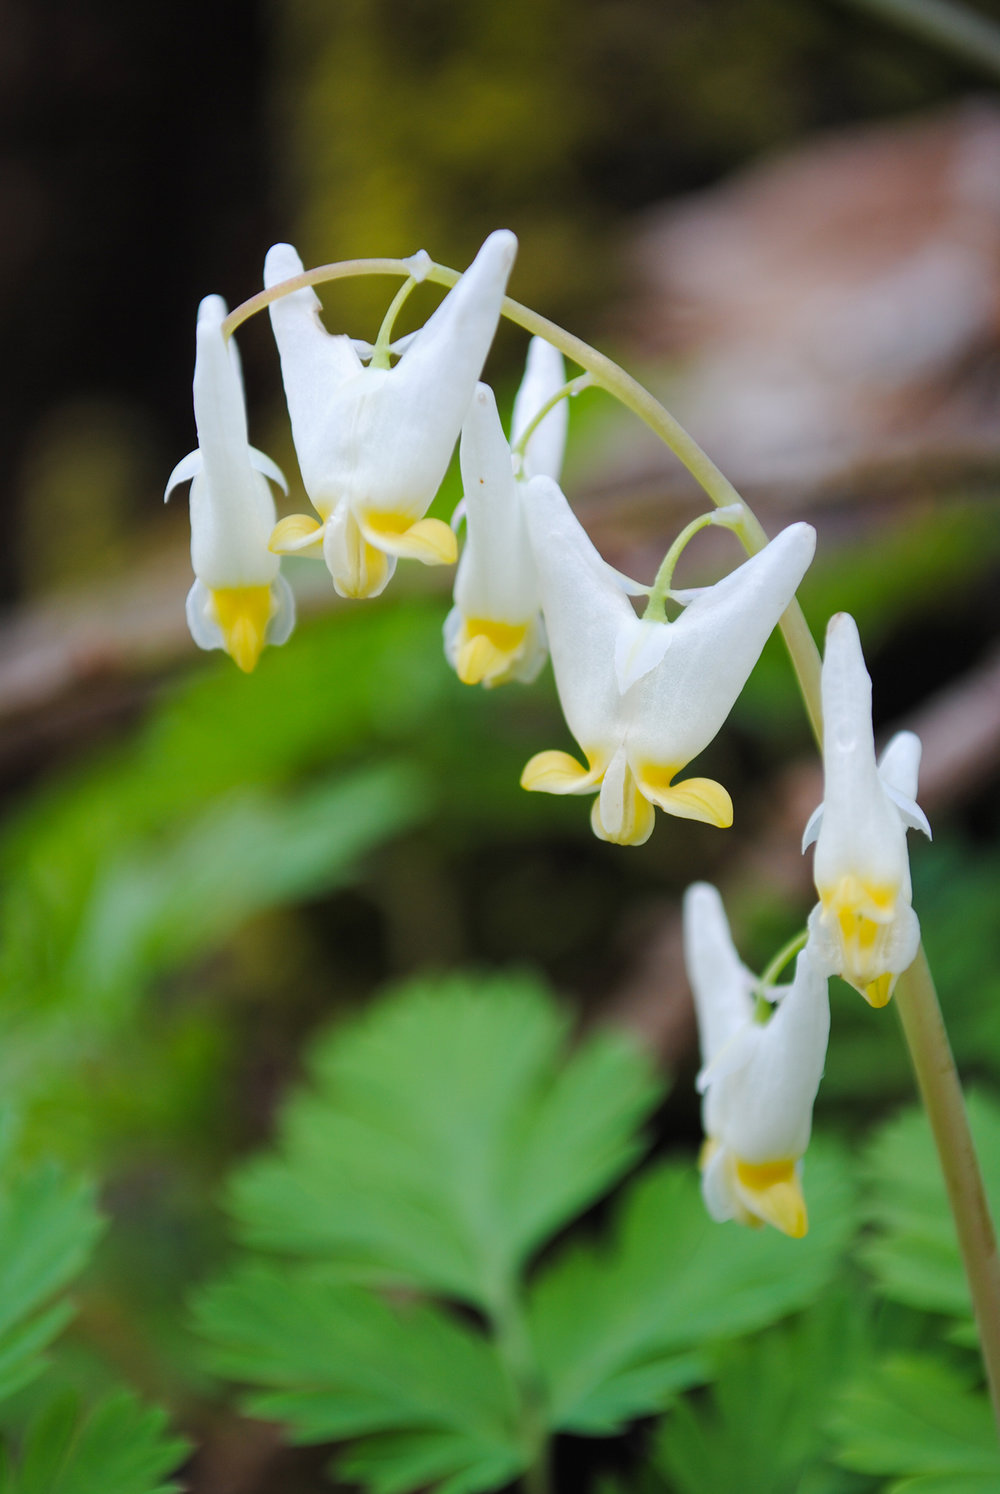 Dicentra cucullaria (Dutchman's breeches). See the hole? Looks like someone forgot to patch their pantalones before hanging them out.